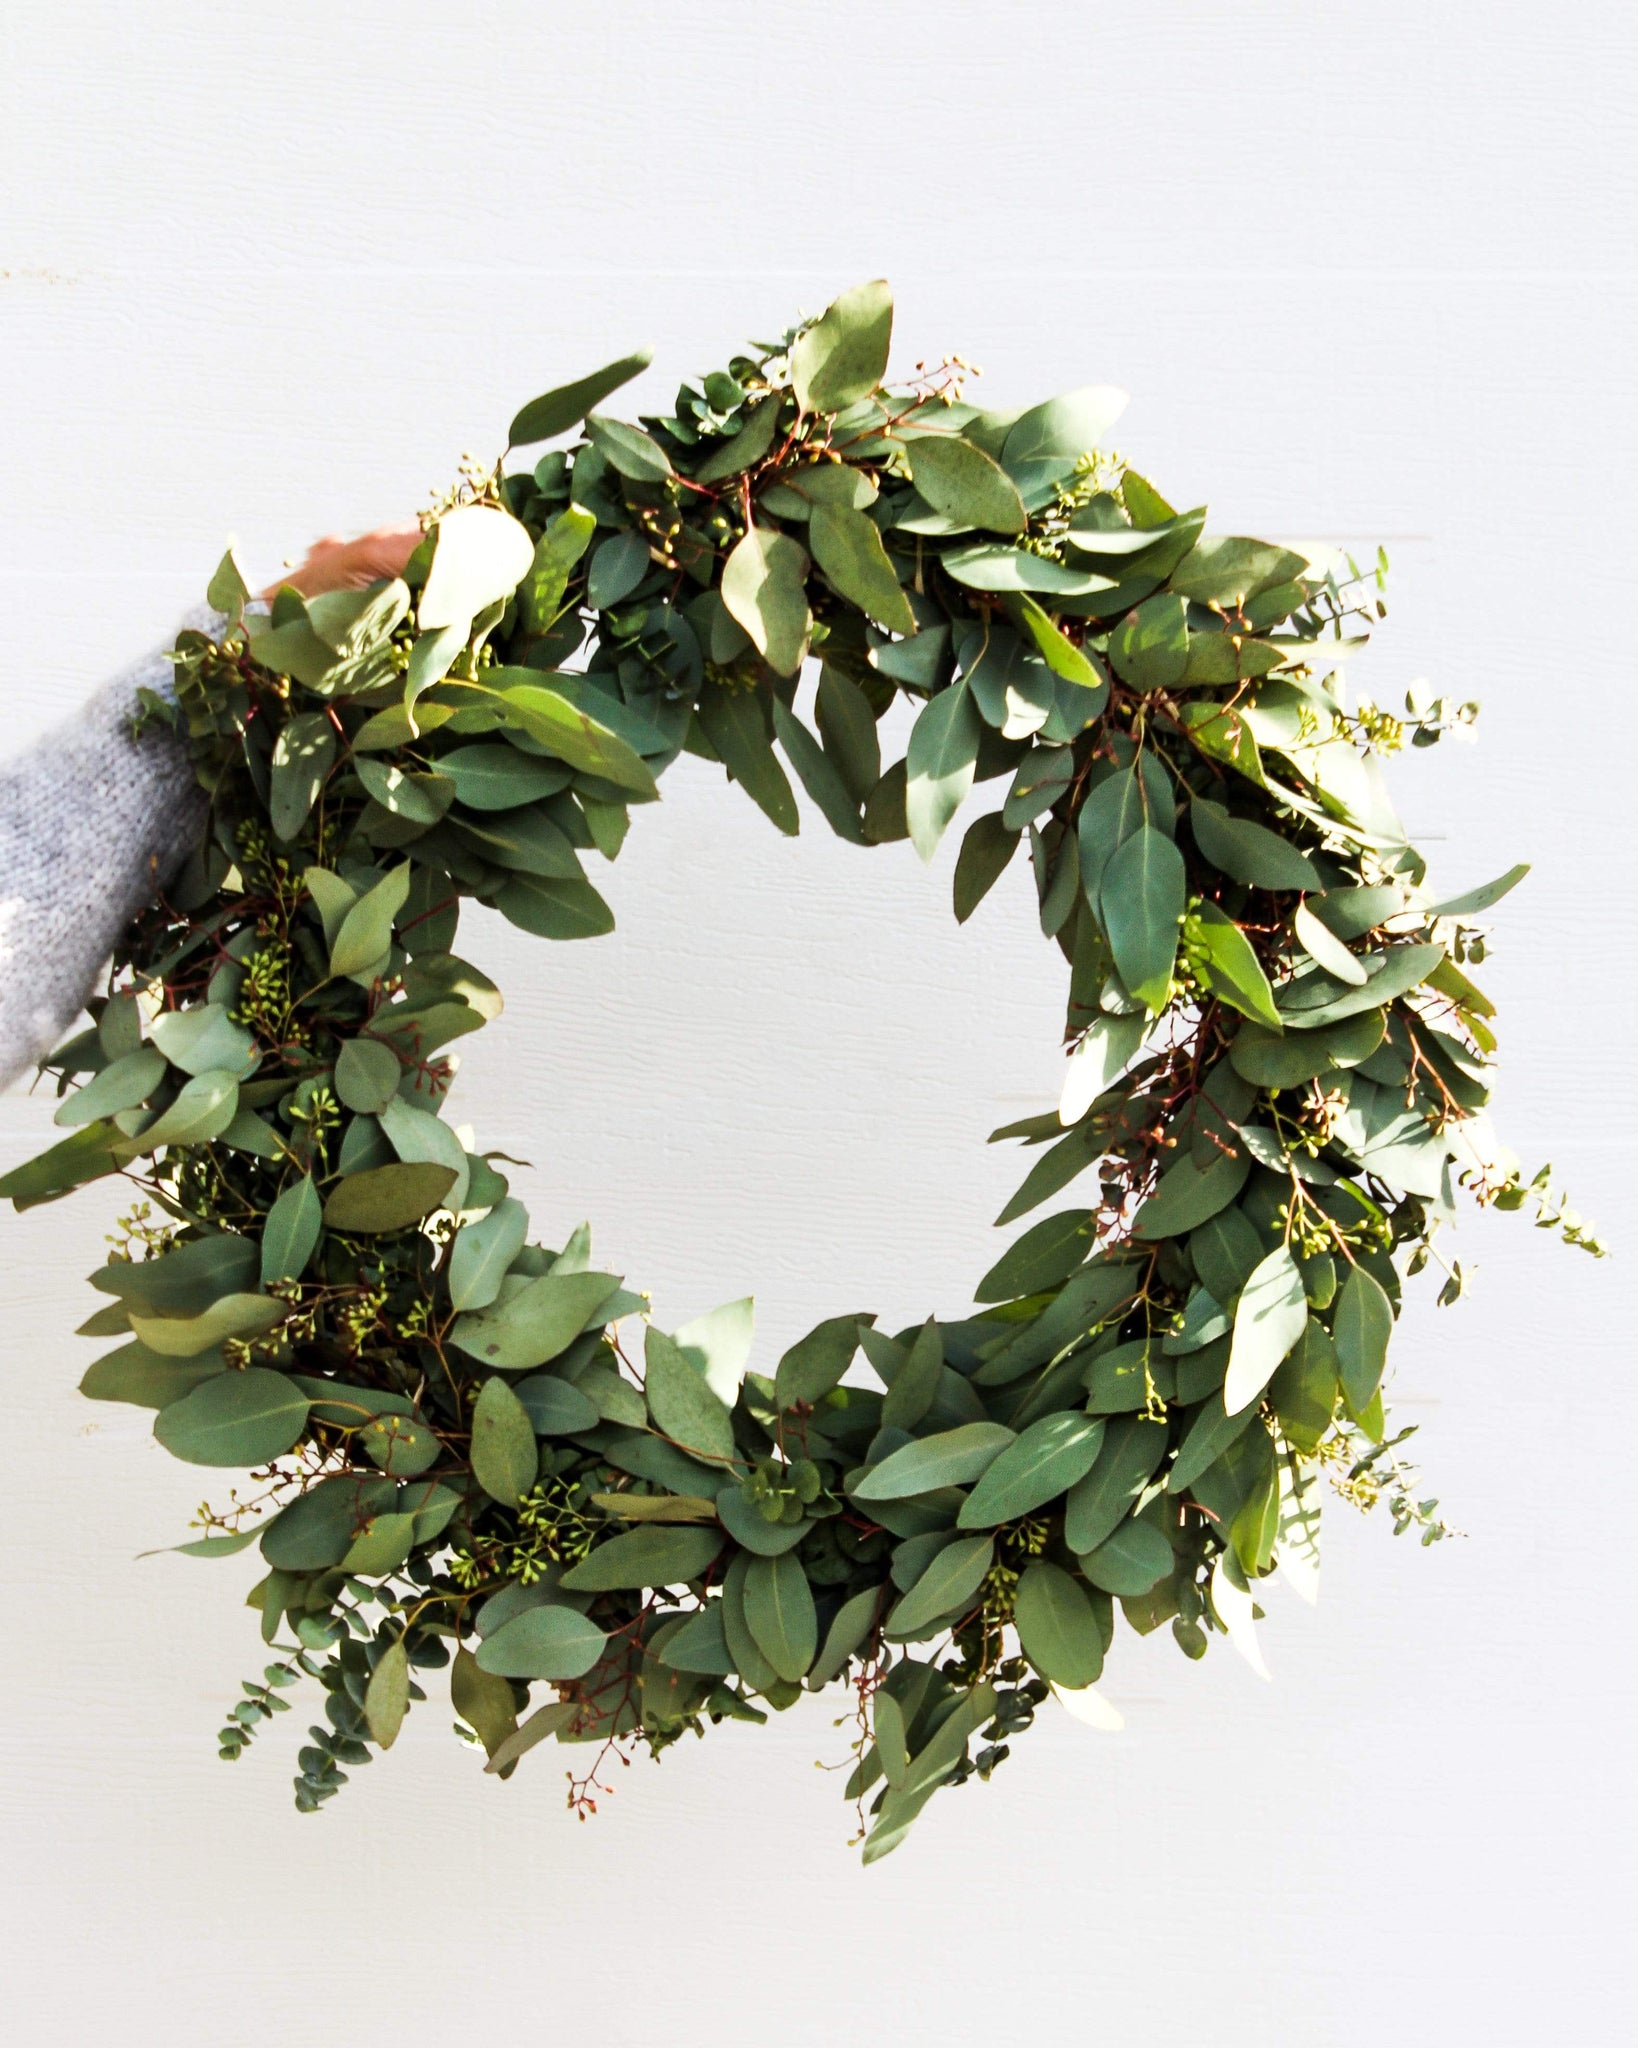 The Eucalyptus Festive Wreath Flowers